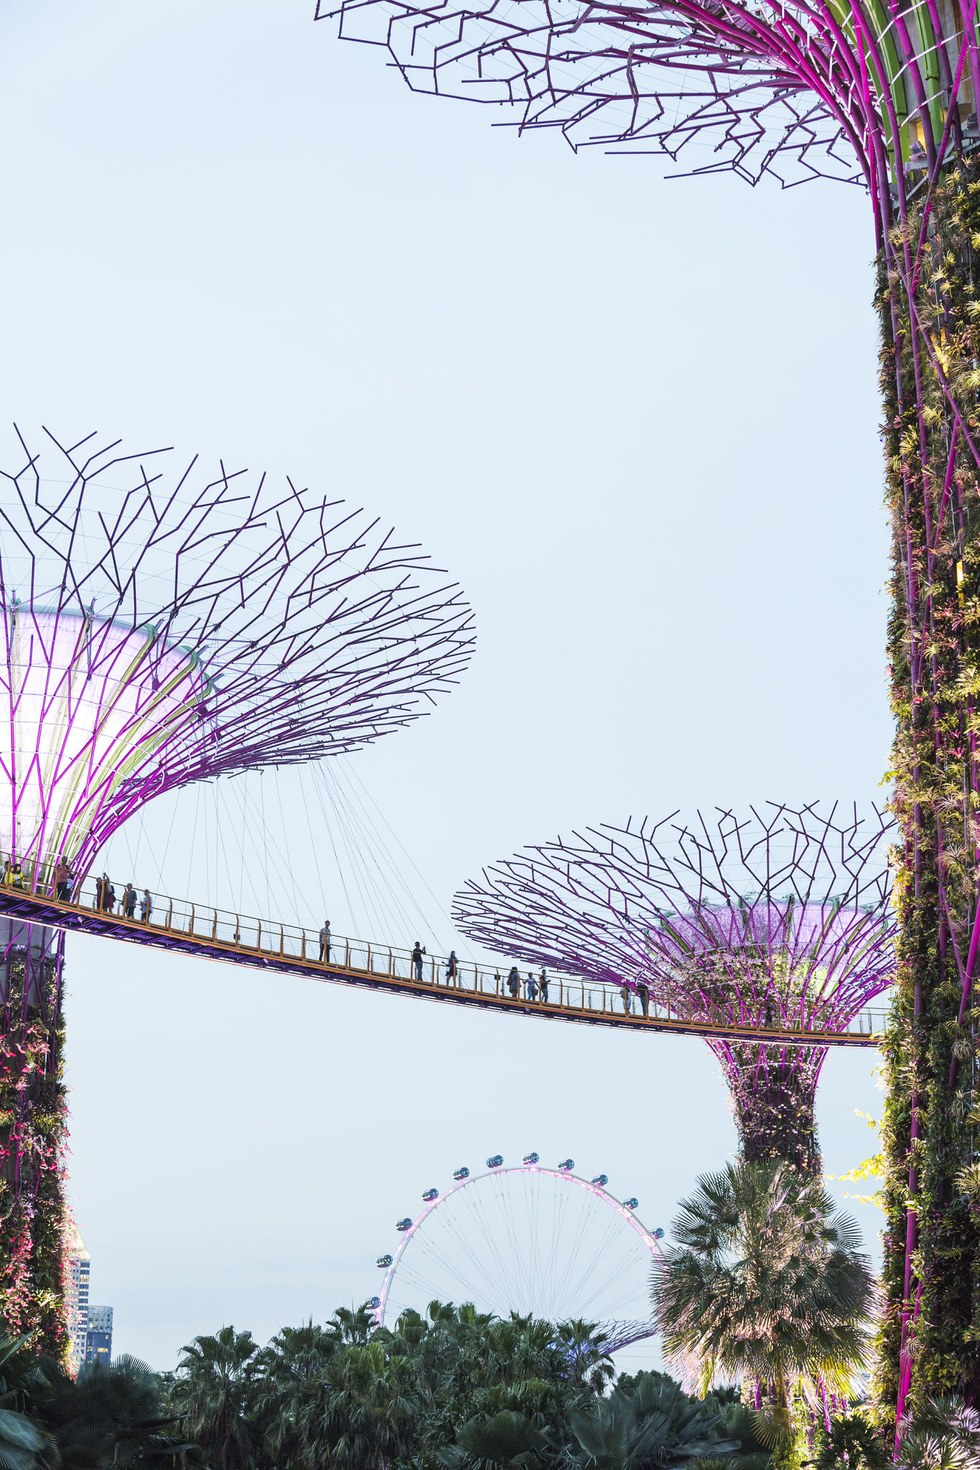 The Supertree Grove and OCBC Skyway at Gardens by the Bay